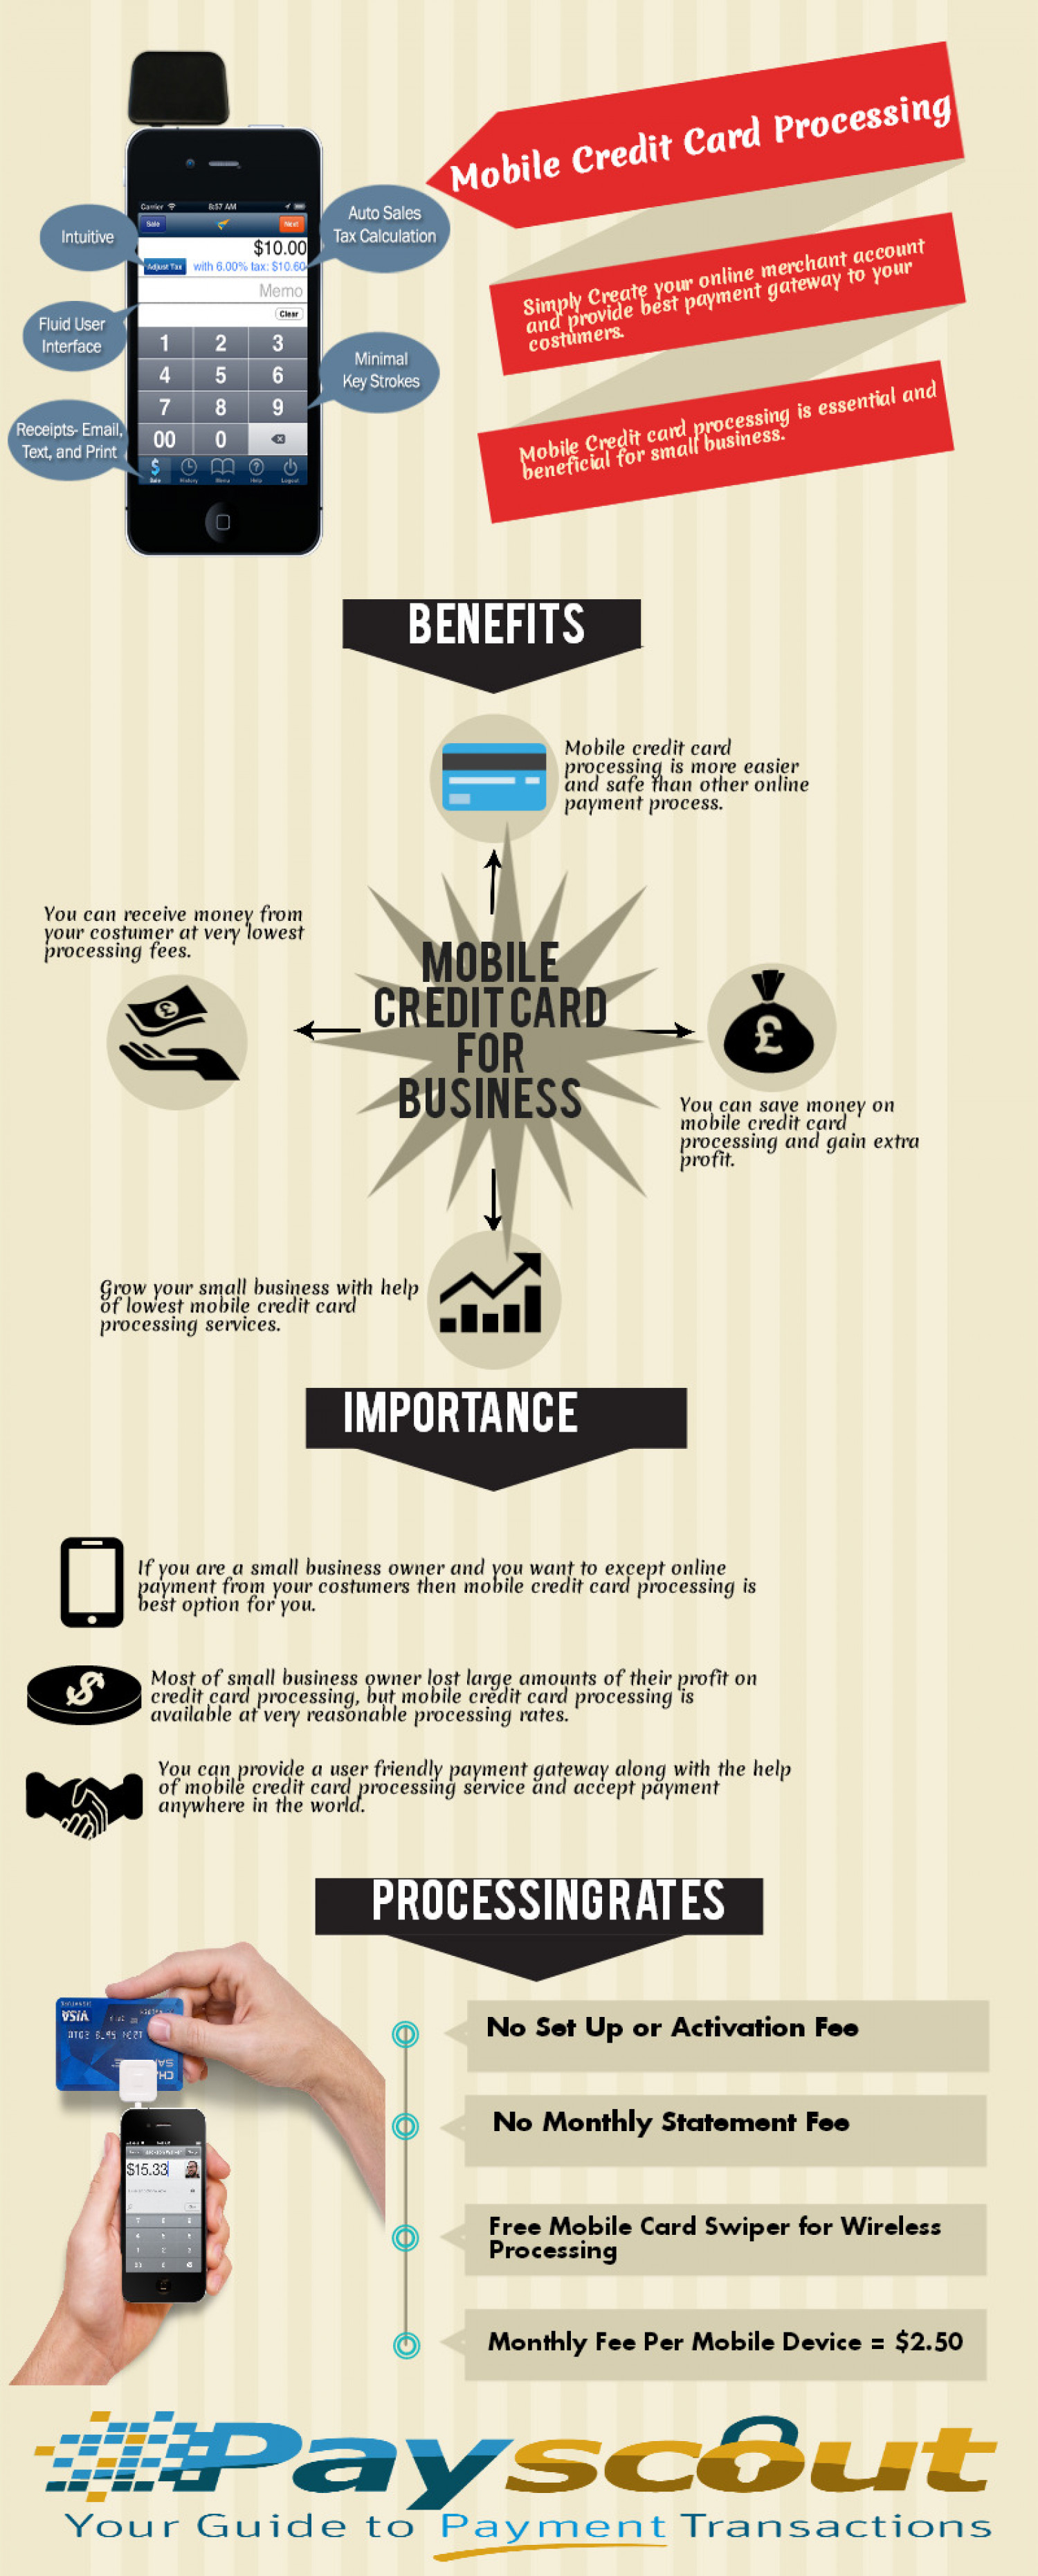 Benefits of mobile credit card processing visual benefits of mobile credit card processing infographic colourmoves